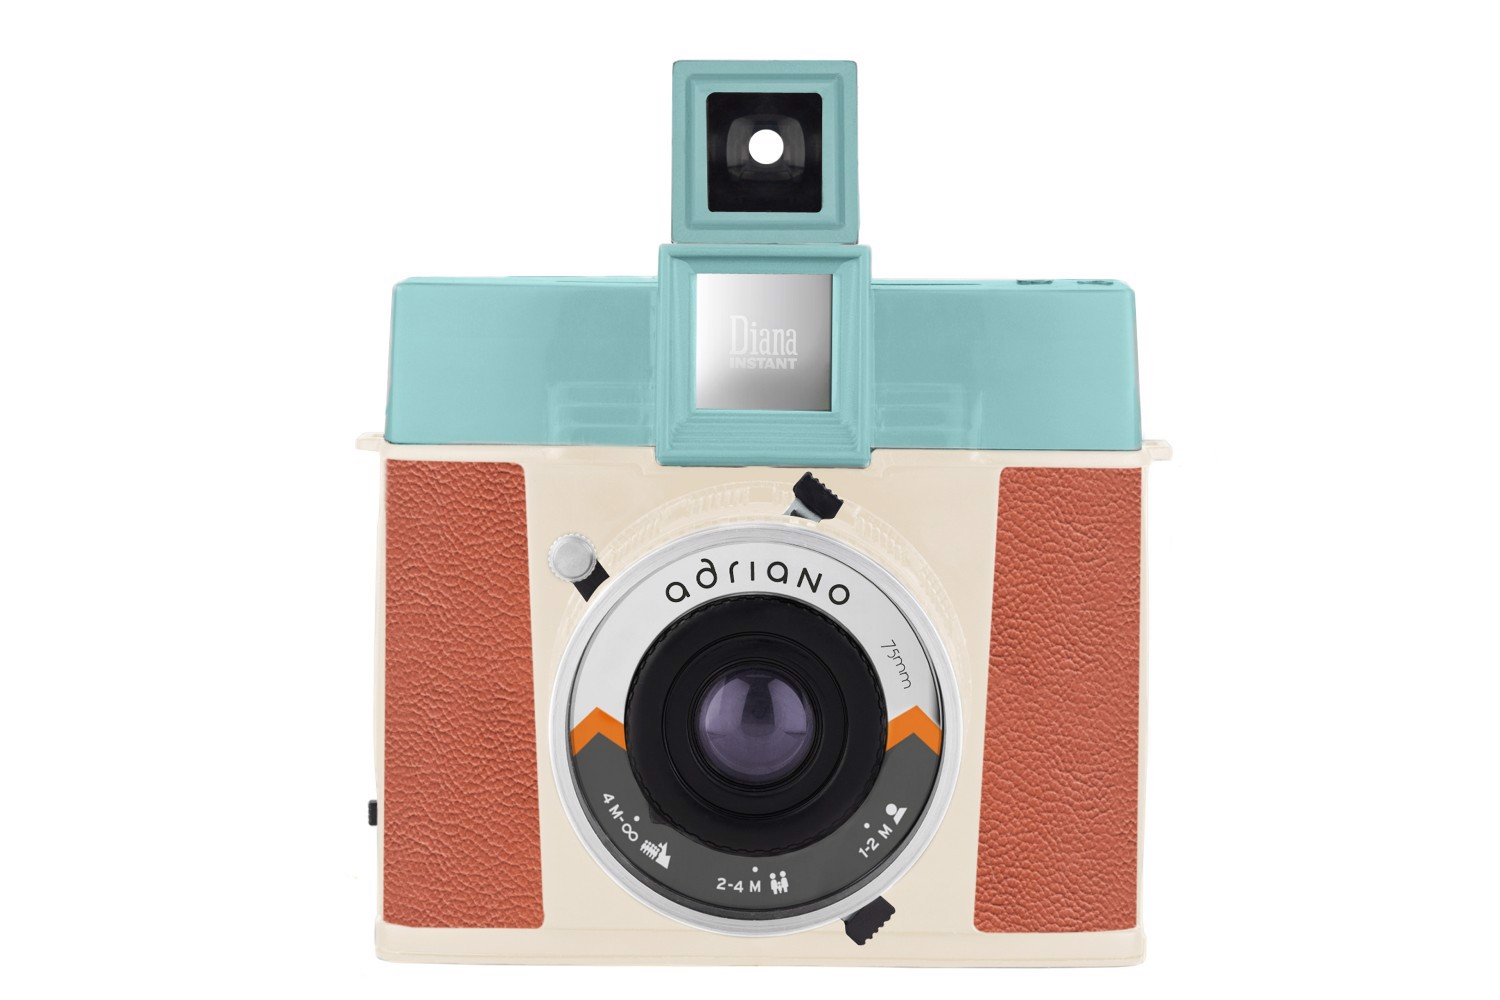 Máy ảnh chụp in liền Diana Instant Square Adriano